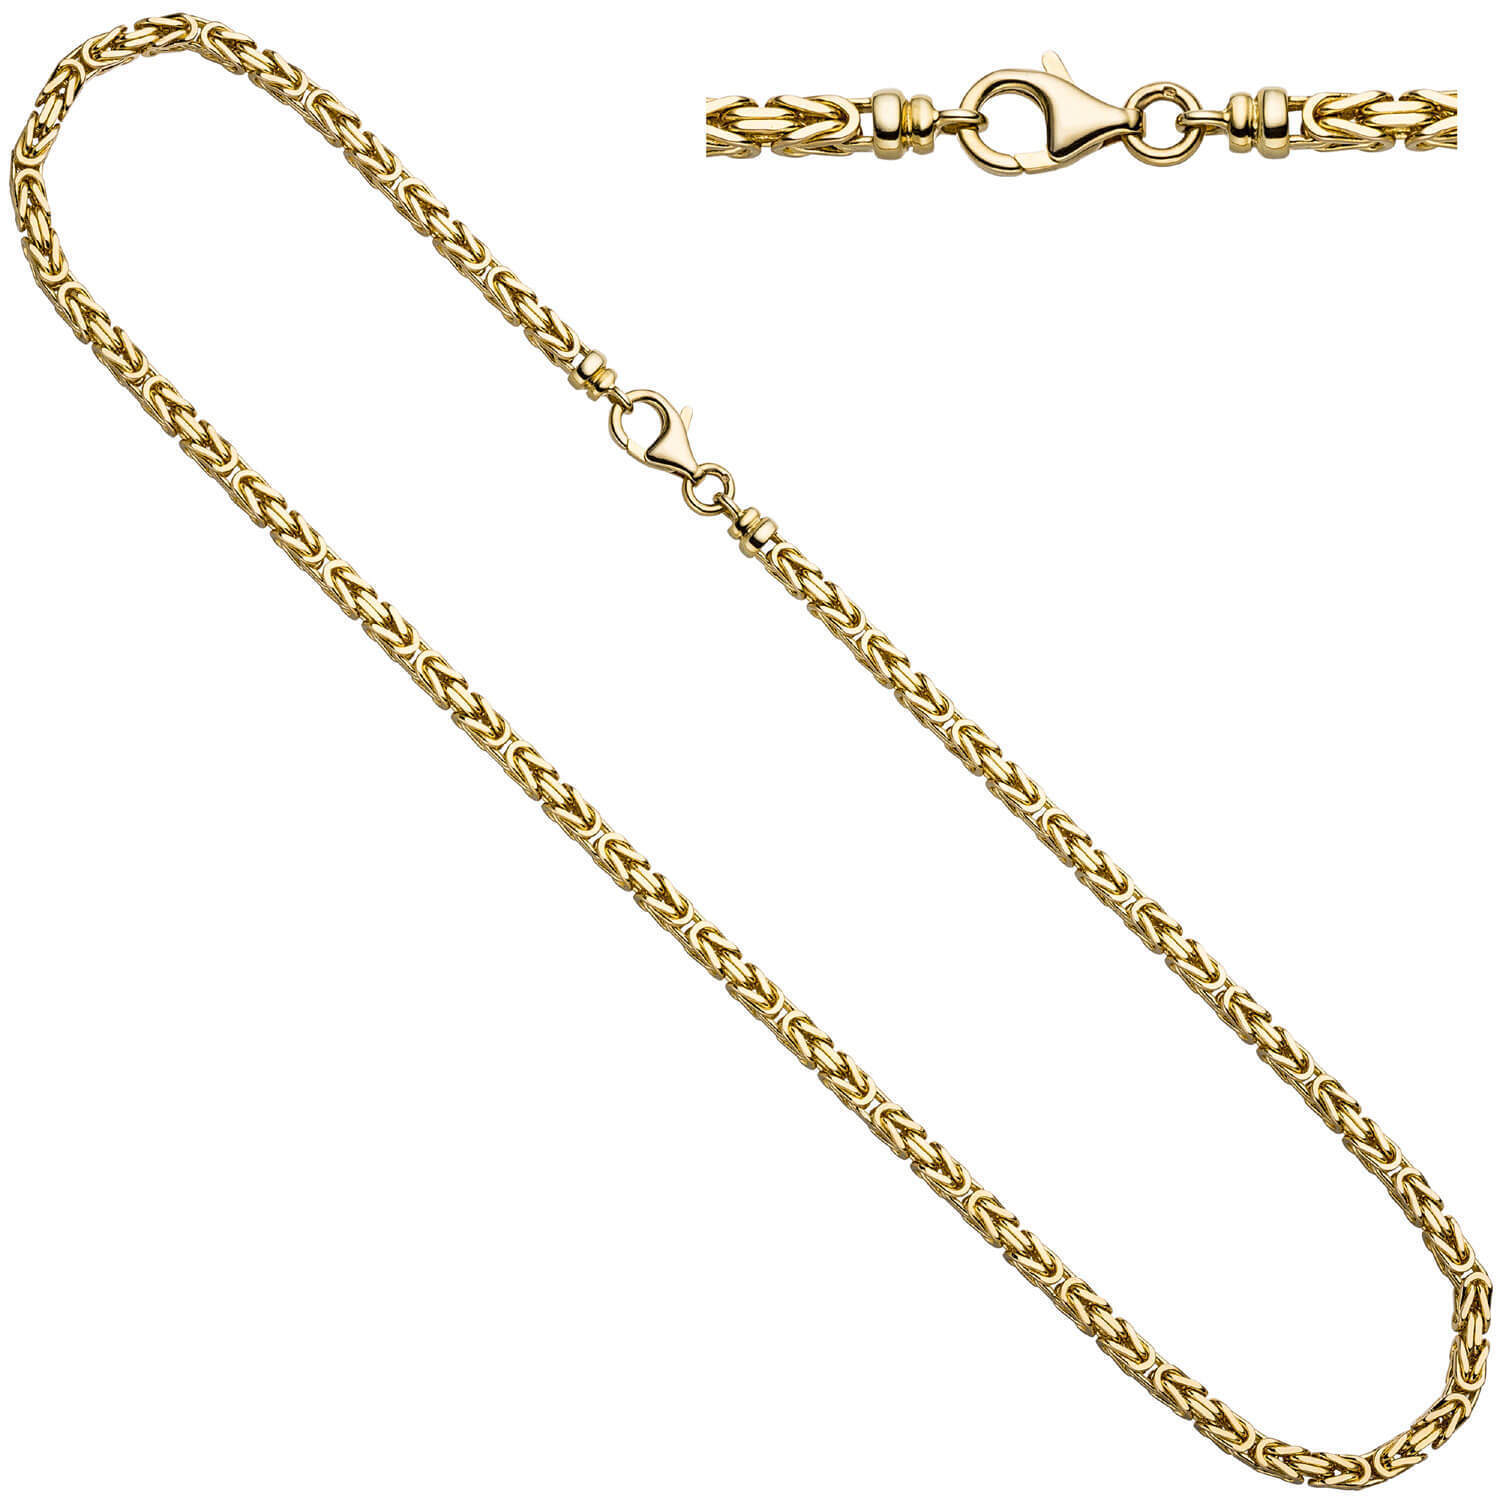 0 1 8in King's Chain Collier made of 585 gold Yellow gold, solid, 31 1 2in,